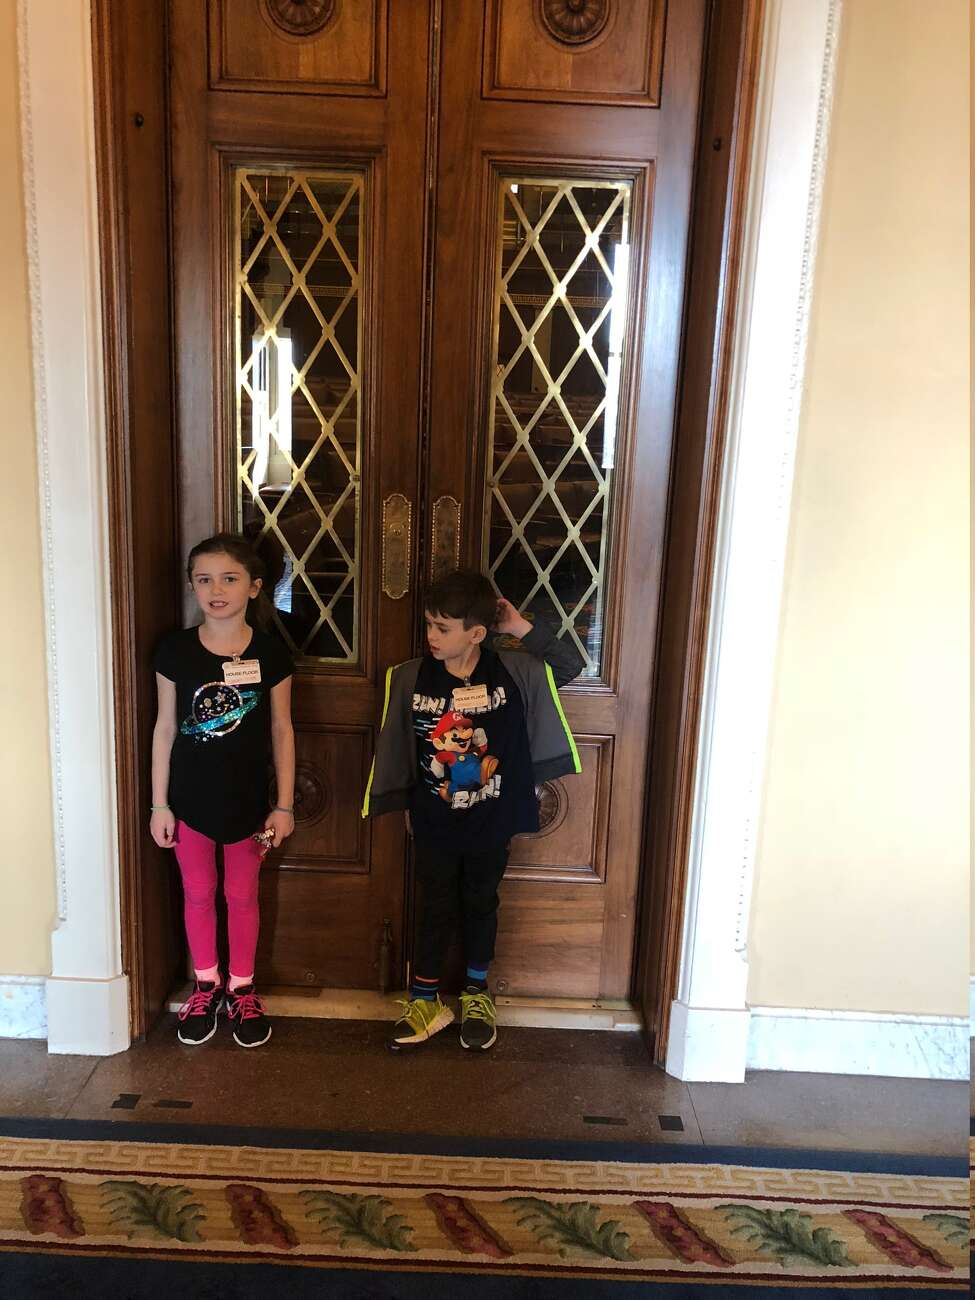 Julia and Colin Sweeney visit the U.S. House of Representatives last week where their father, former Congressman John Sweeney, once wielded a lot of power before his alcohol-fueled downfall.